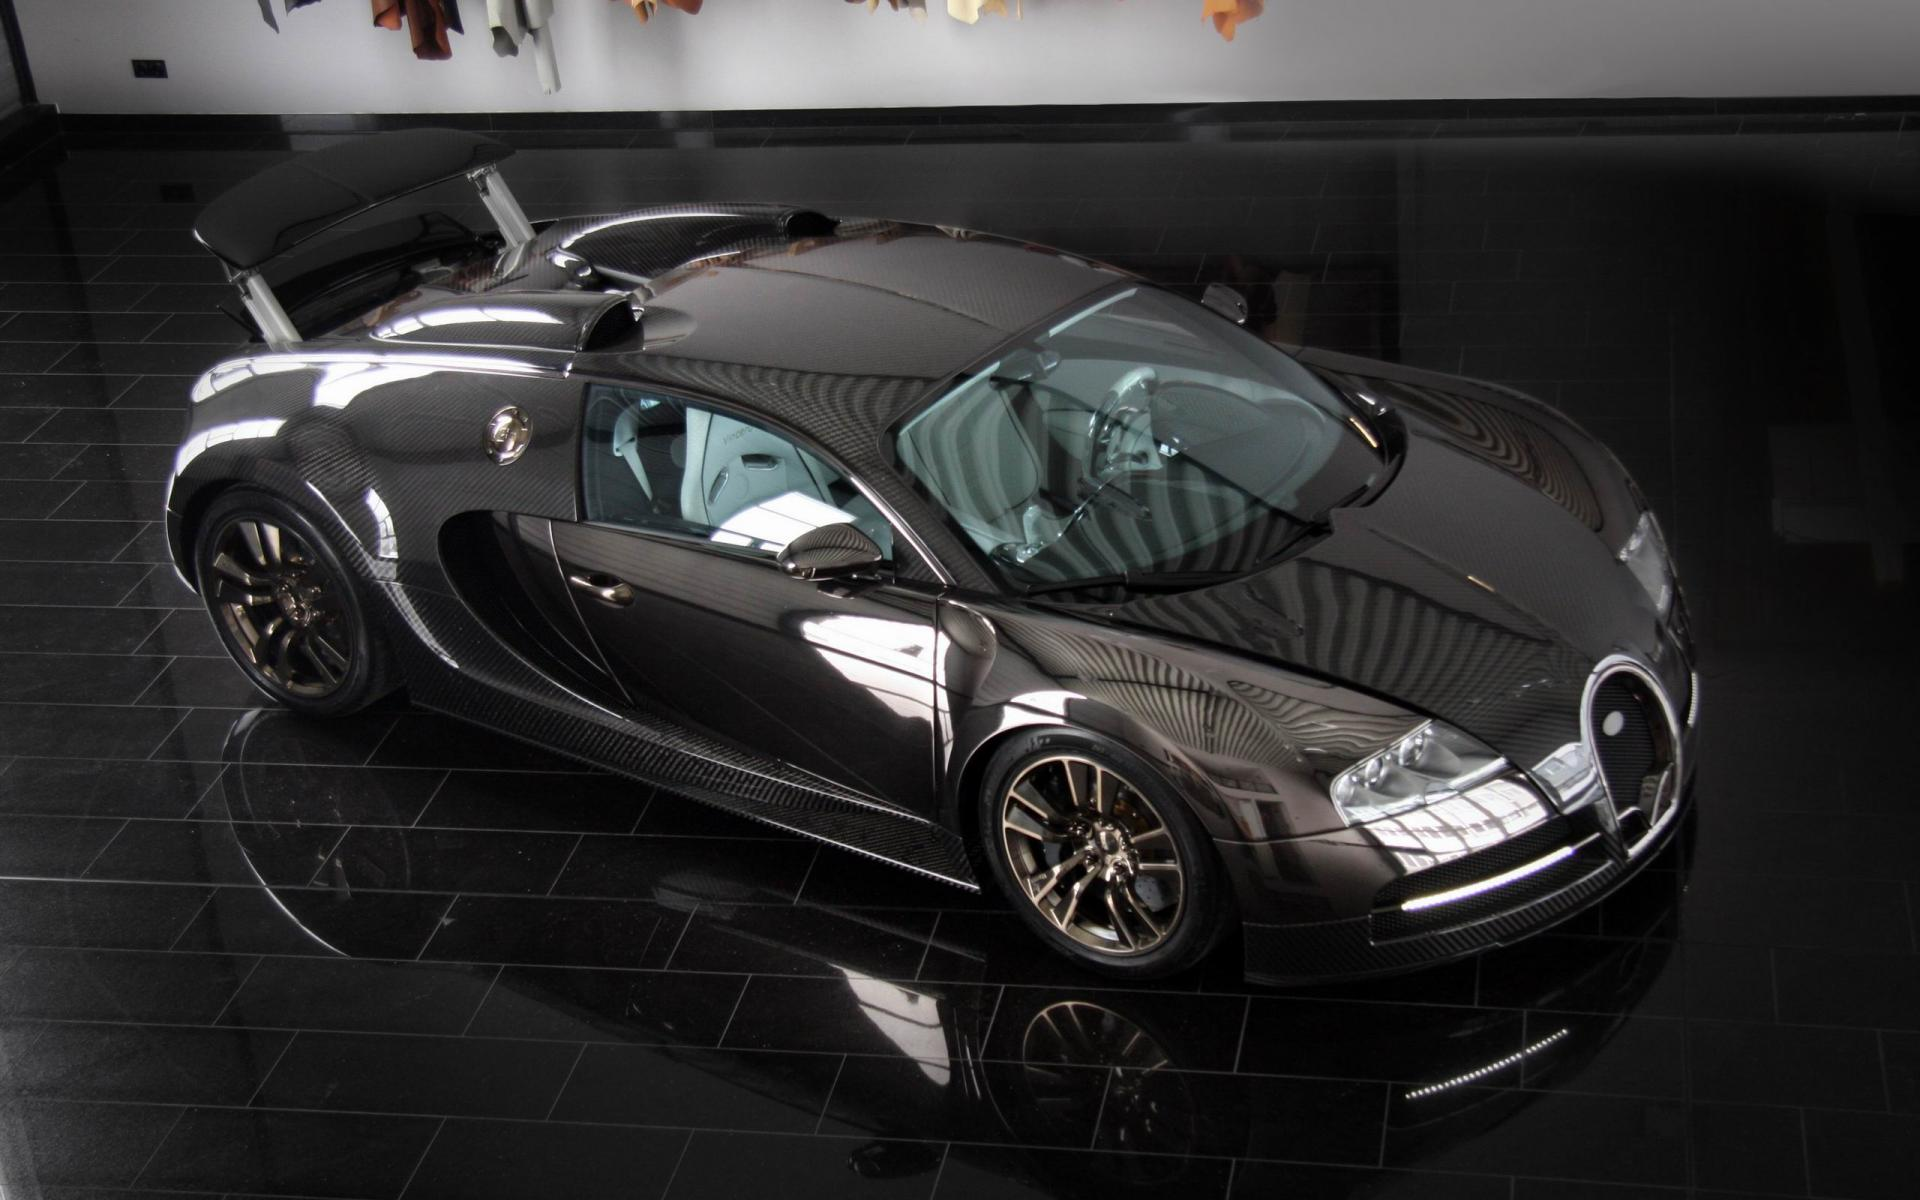 Bugatti Cars Wallpapers 1080p Bugatti Iphone Wallpaper Hd: Black Bugatti Wallpaper 46 Cool Hd Wallpaper